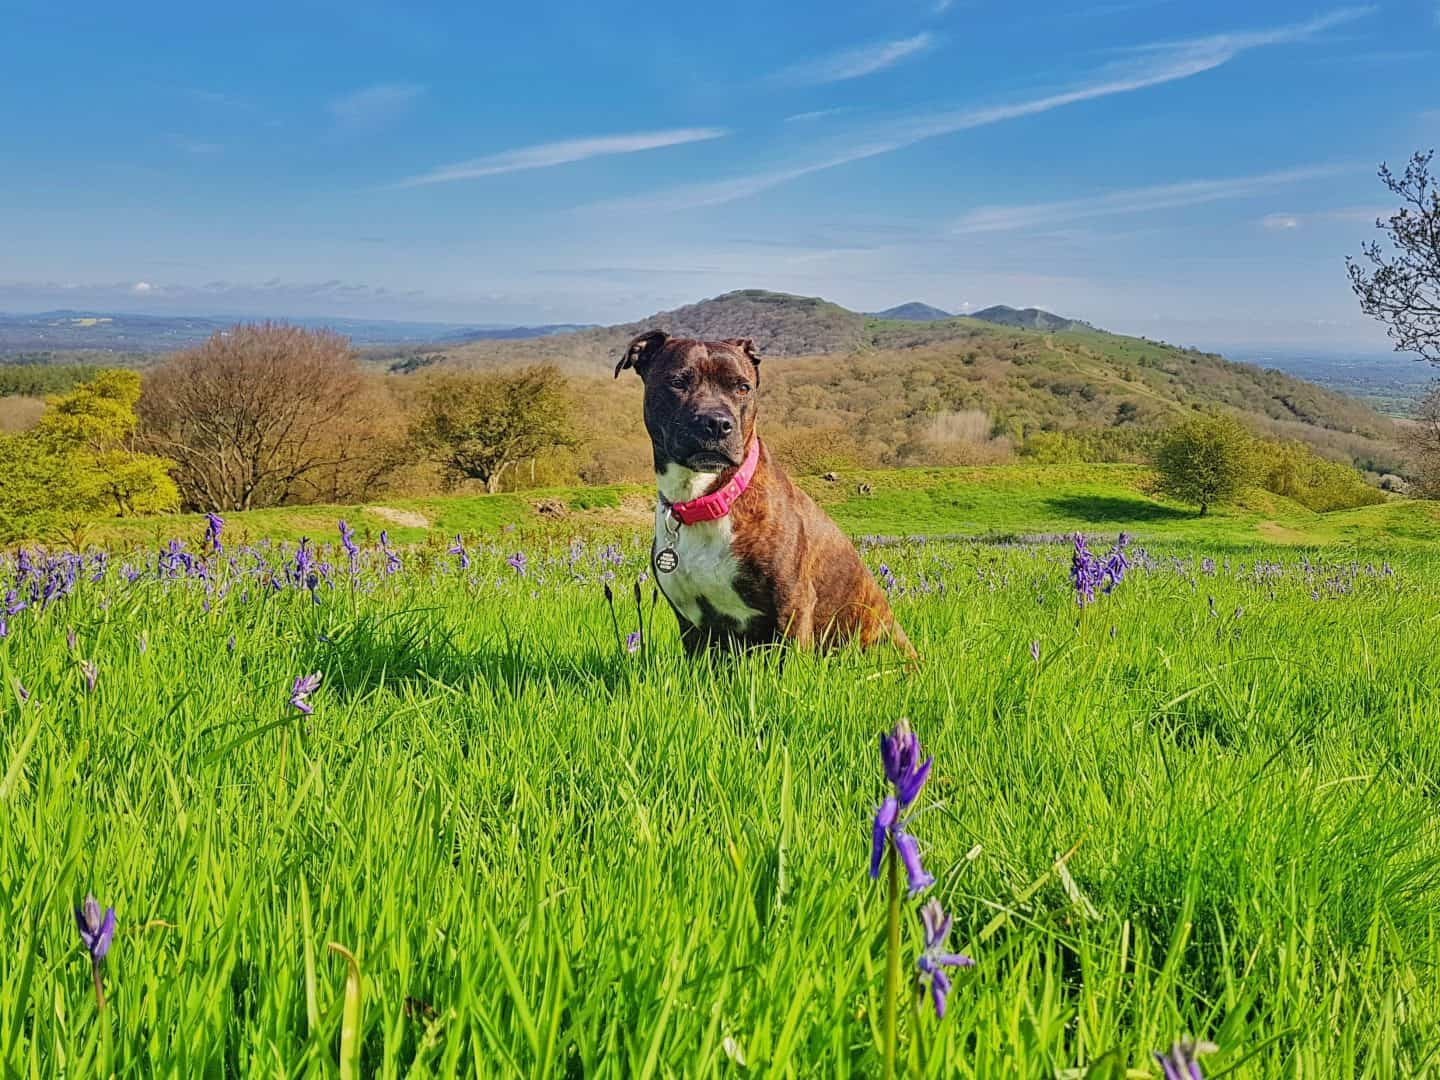 photo of a dog sat in a bluebell field with hills in background